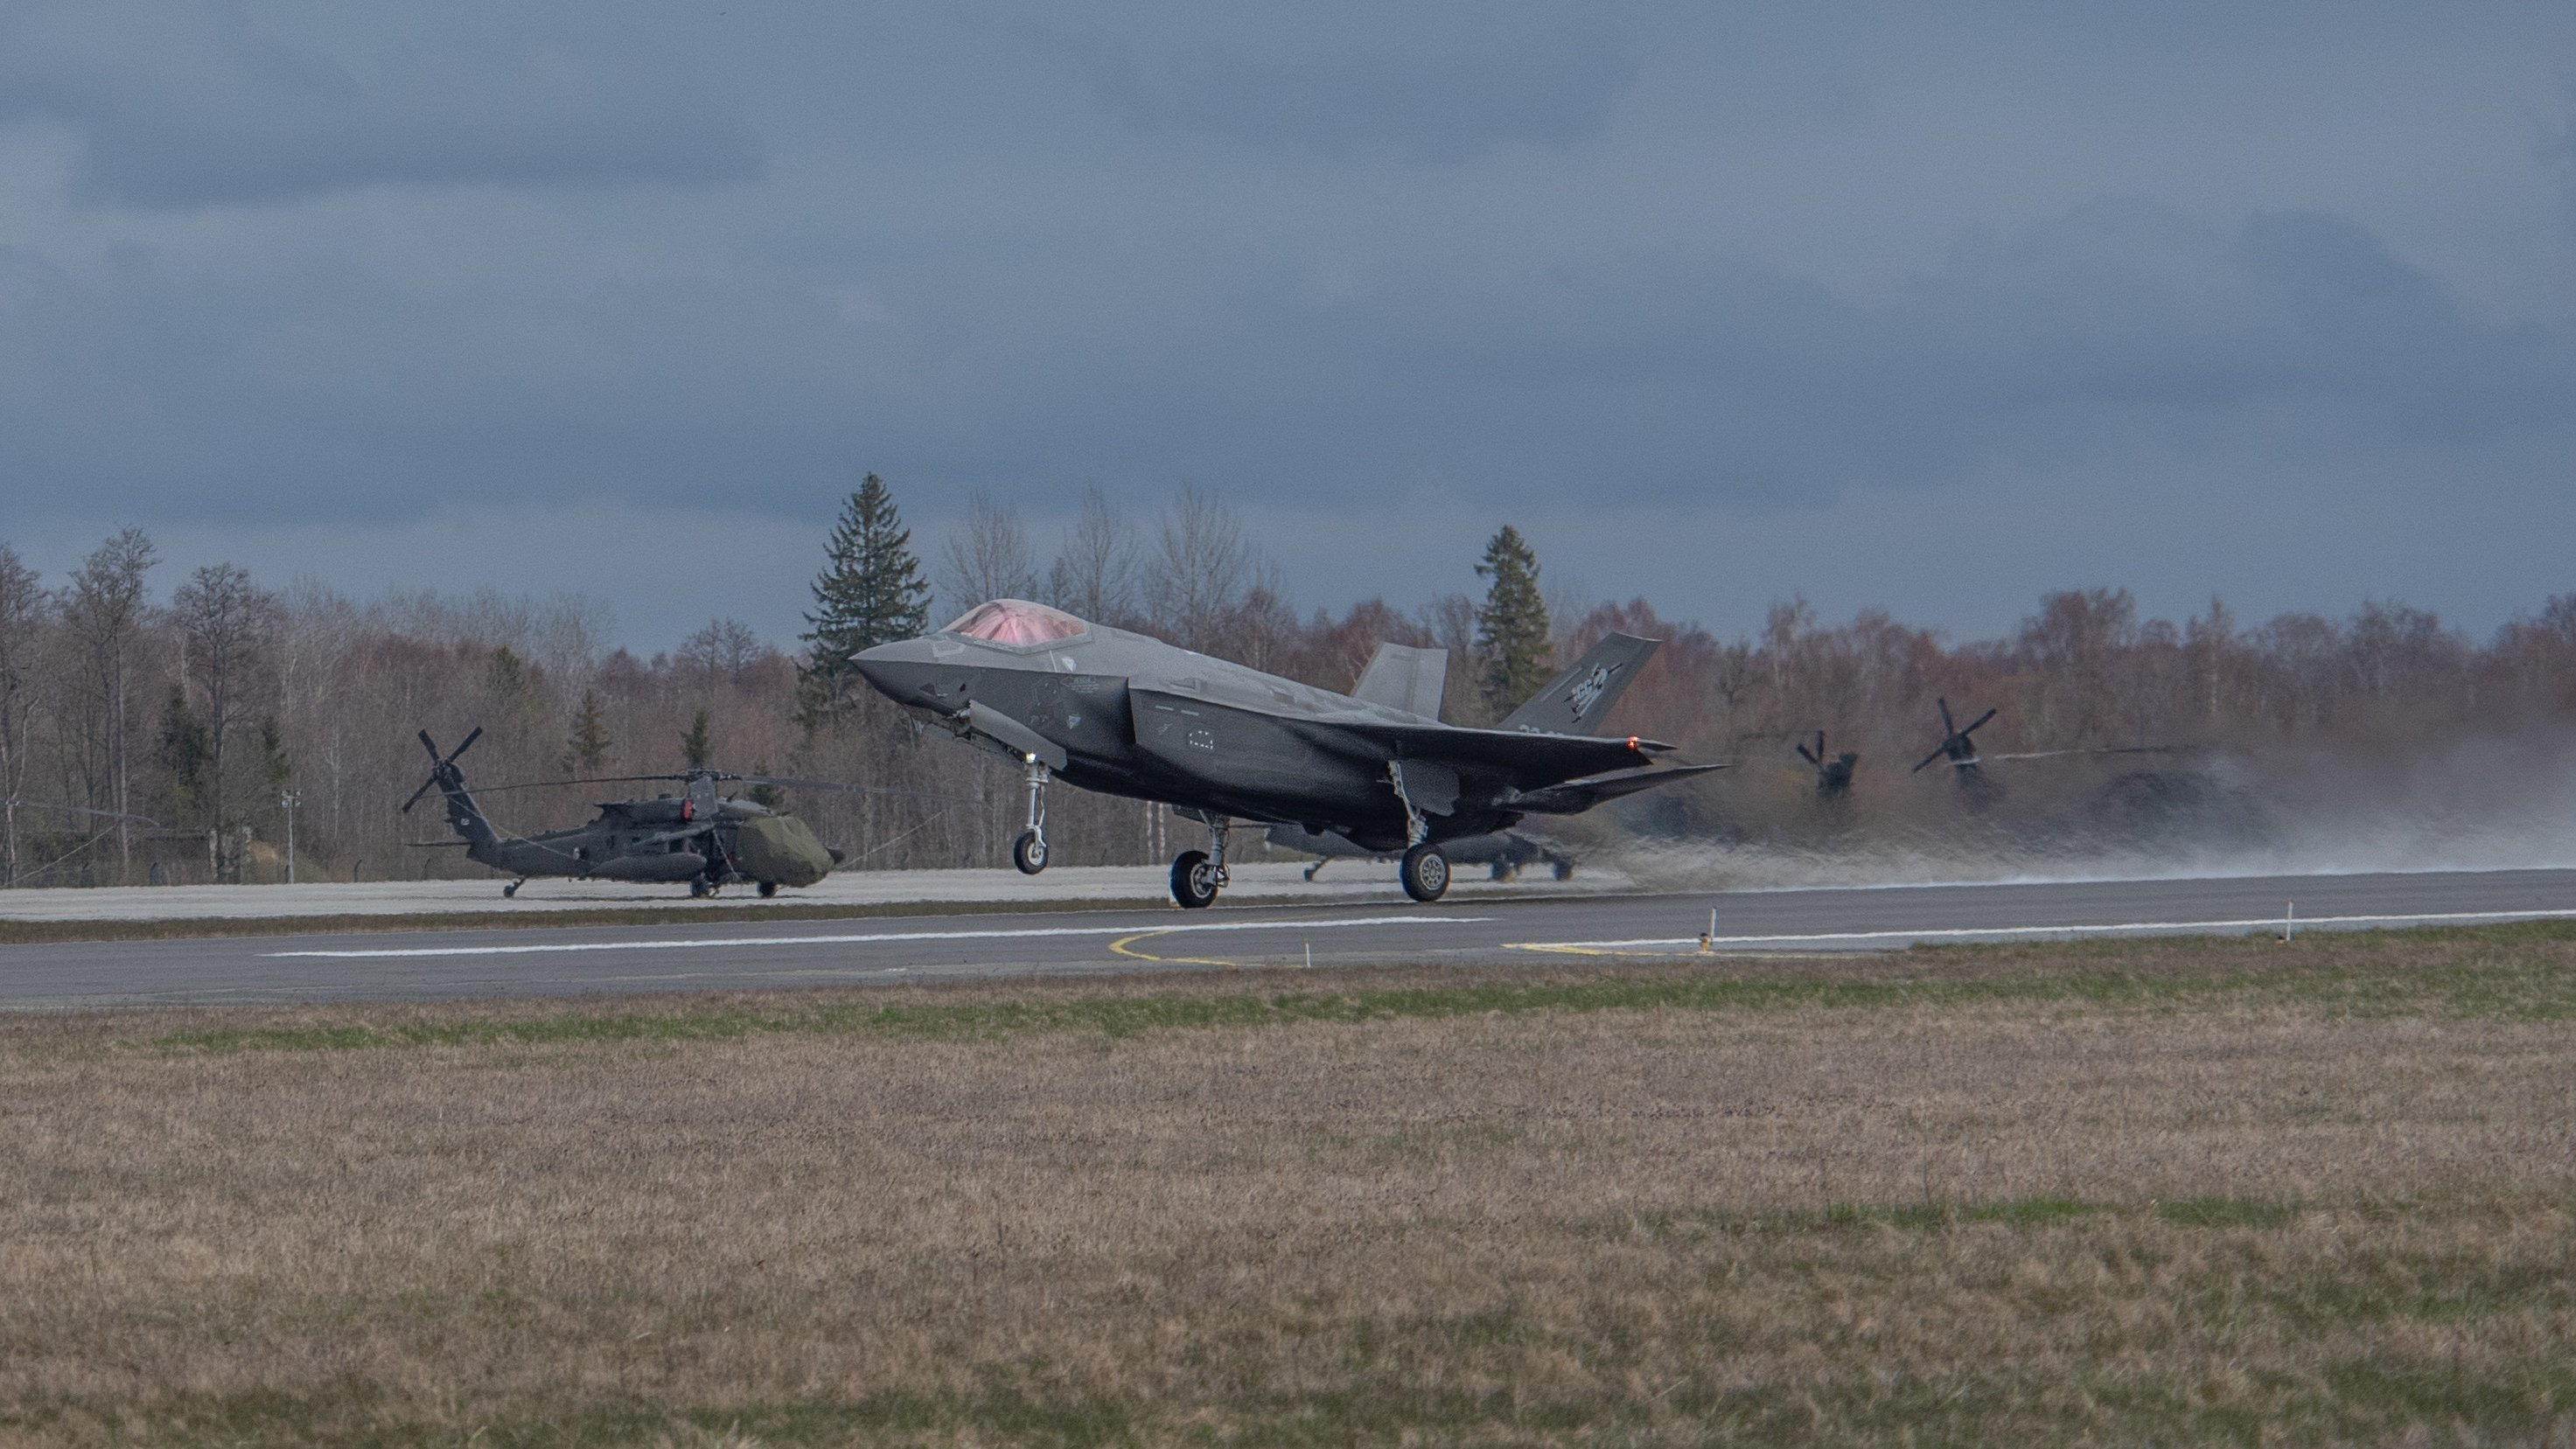 An Italian Air Force F-35 fighter aircraft taking off at Ämari Air Base, Estonia, during a training mission. Archive picture by Mario Trabalza.